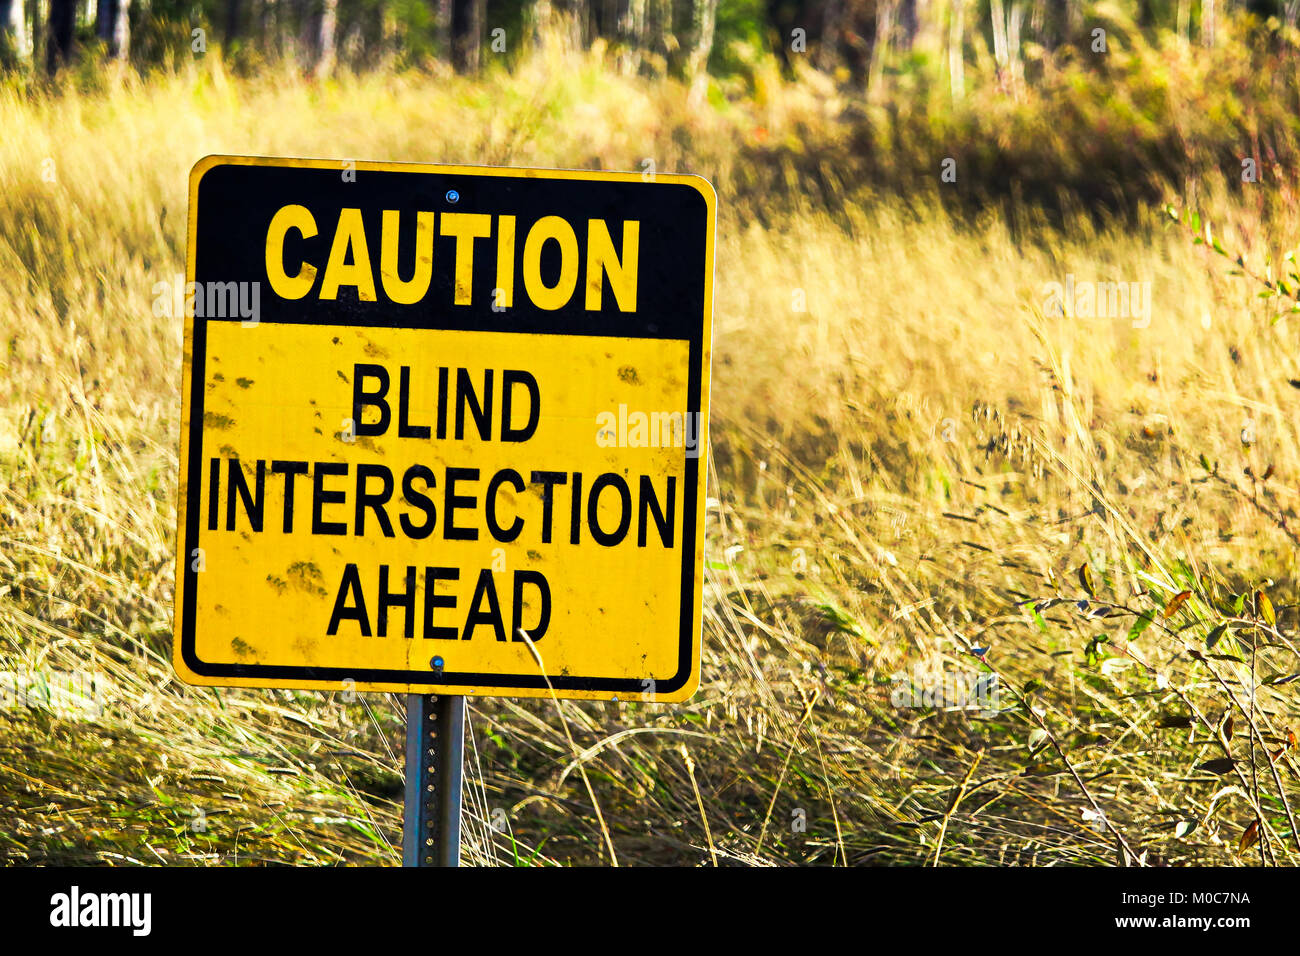 Closeup of a Caution Blind Intersection Ahead sign - Stock Image